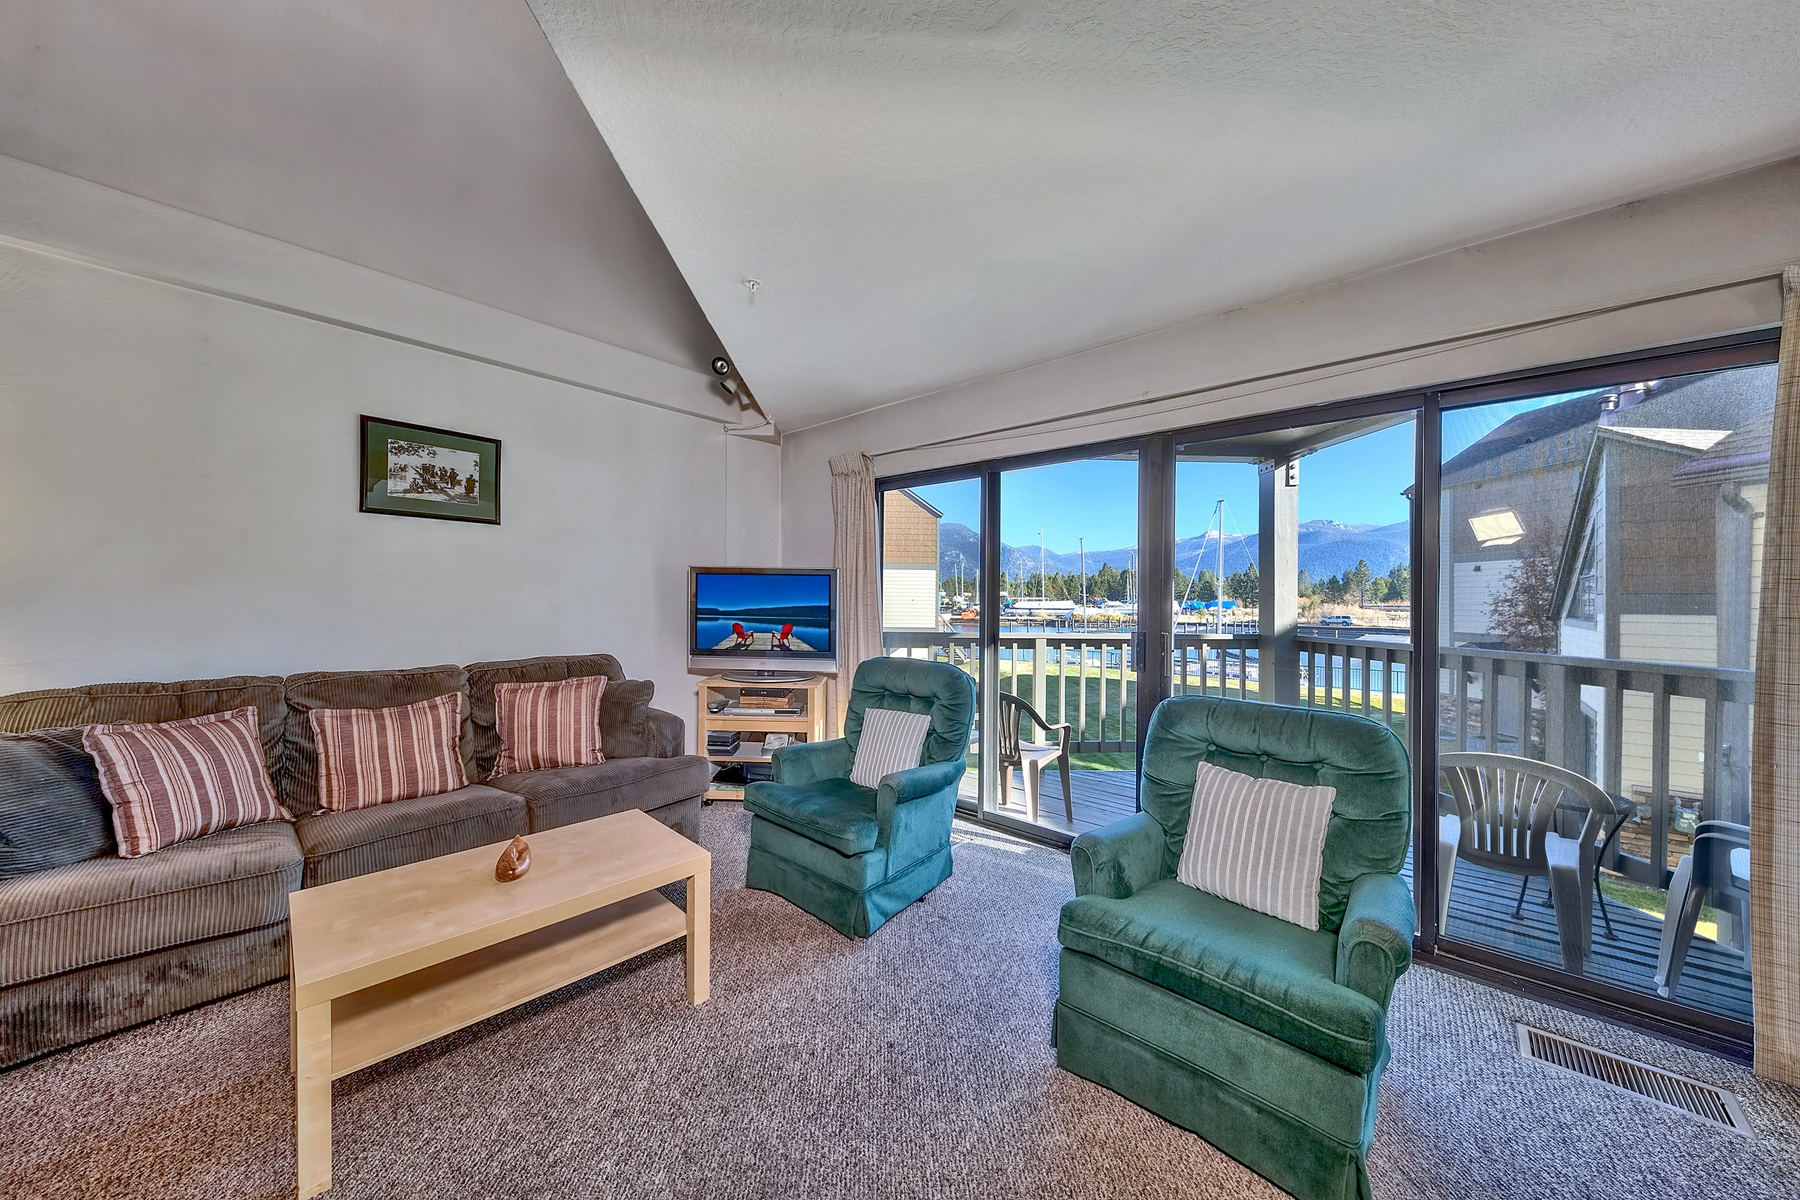 Additional photo for property listing at 489 Tahoe Keys #57, South Lake Tahoe, Ca 96150 489 Tahoe Keys #57 South Lake Tahoe, California 96150 United States